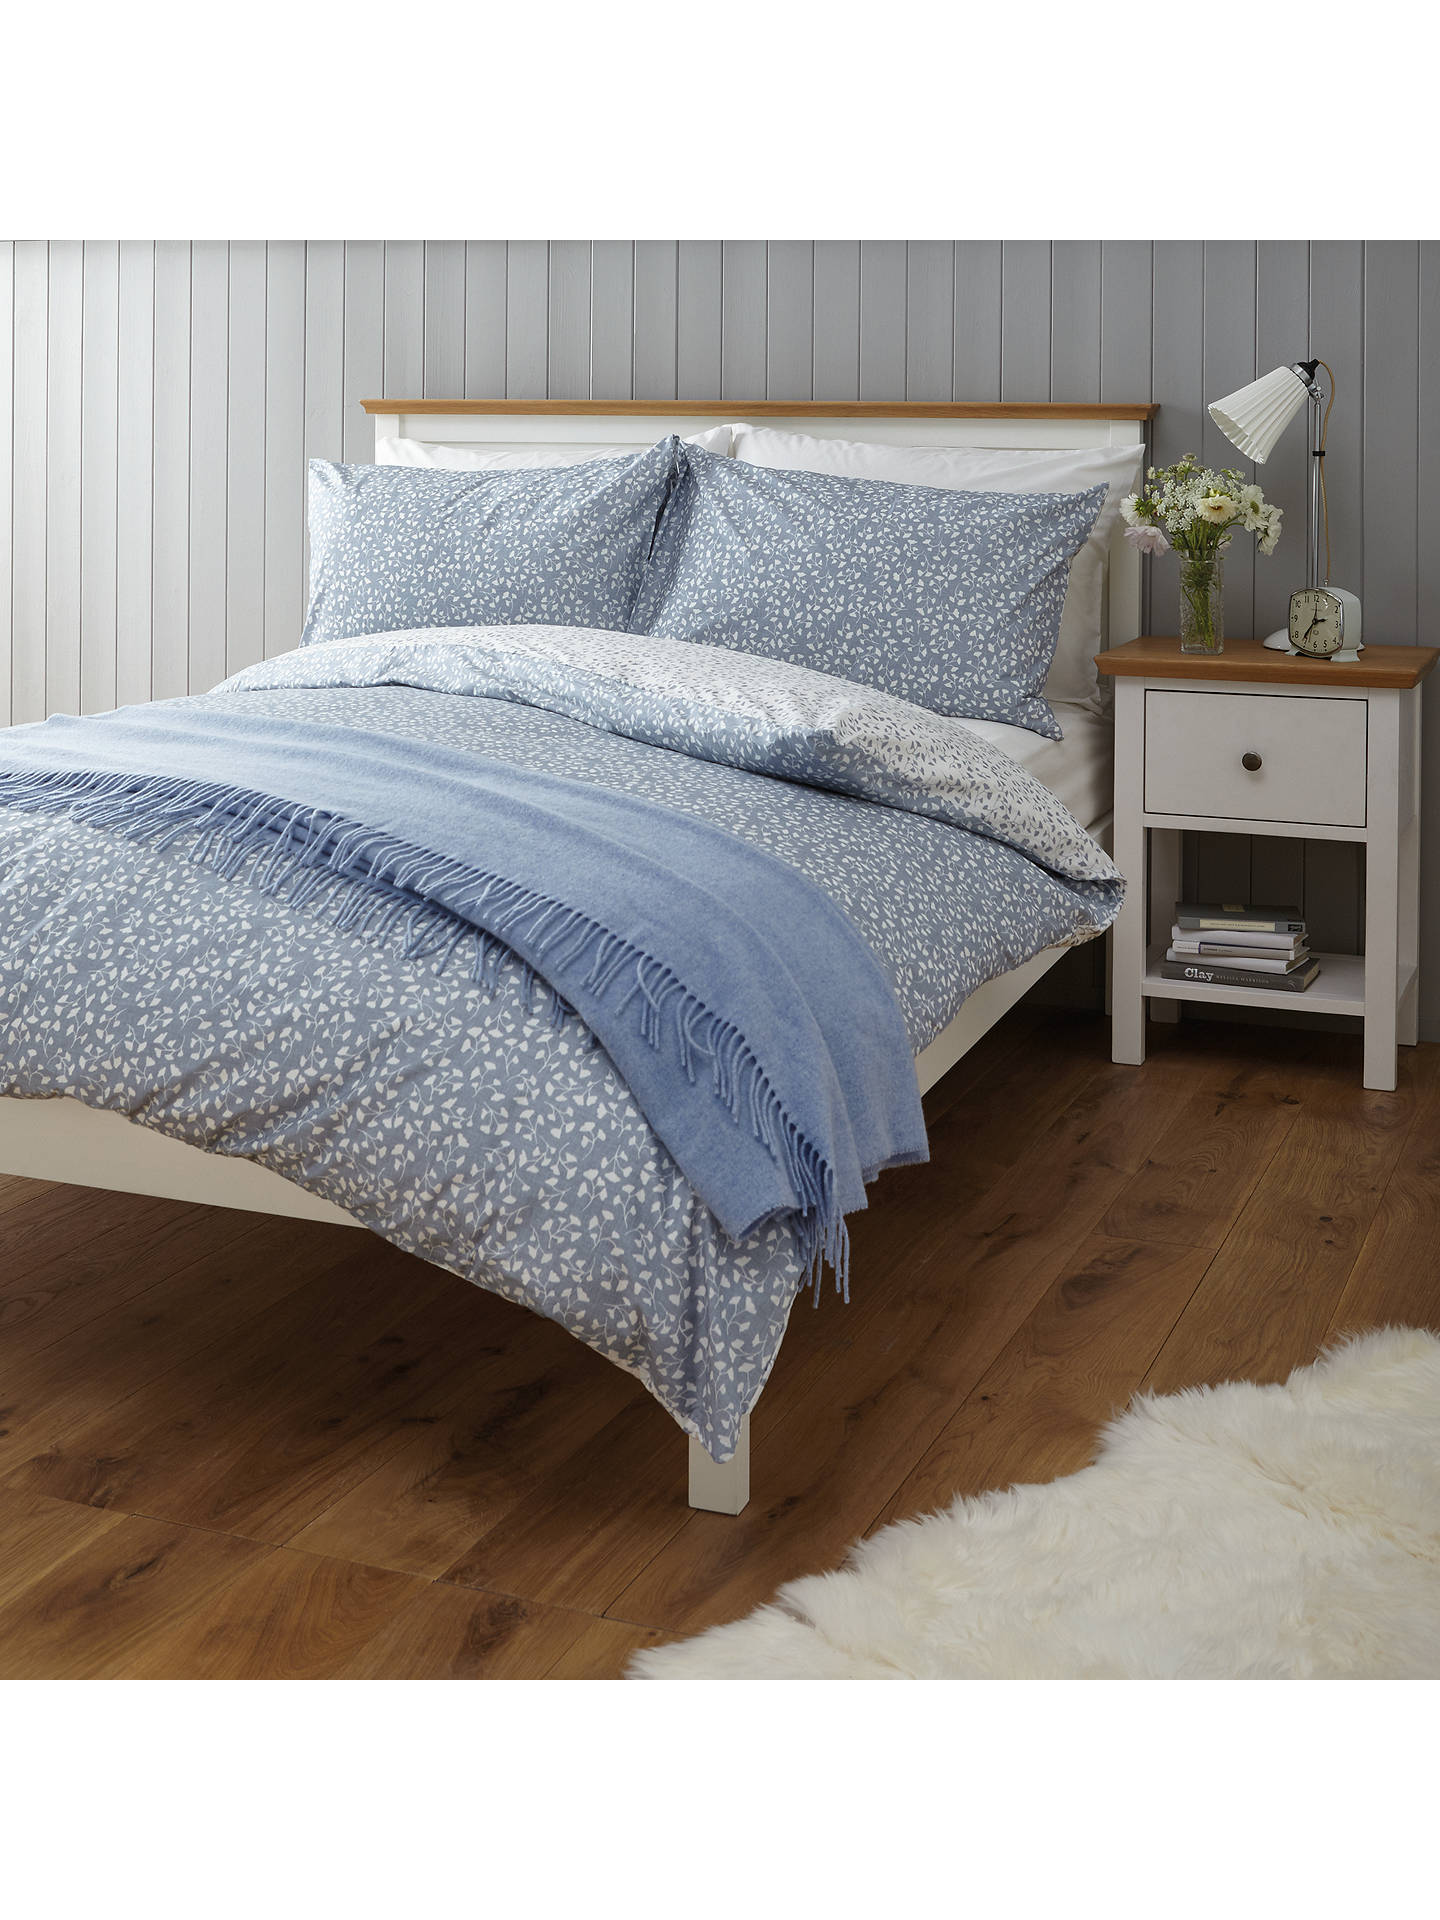 john lewis partners crisp and fresh country arley. Black Bedroom Furniture Sets. Home Design Ideas